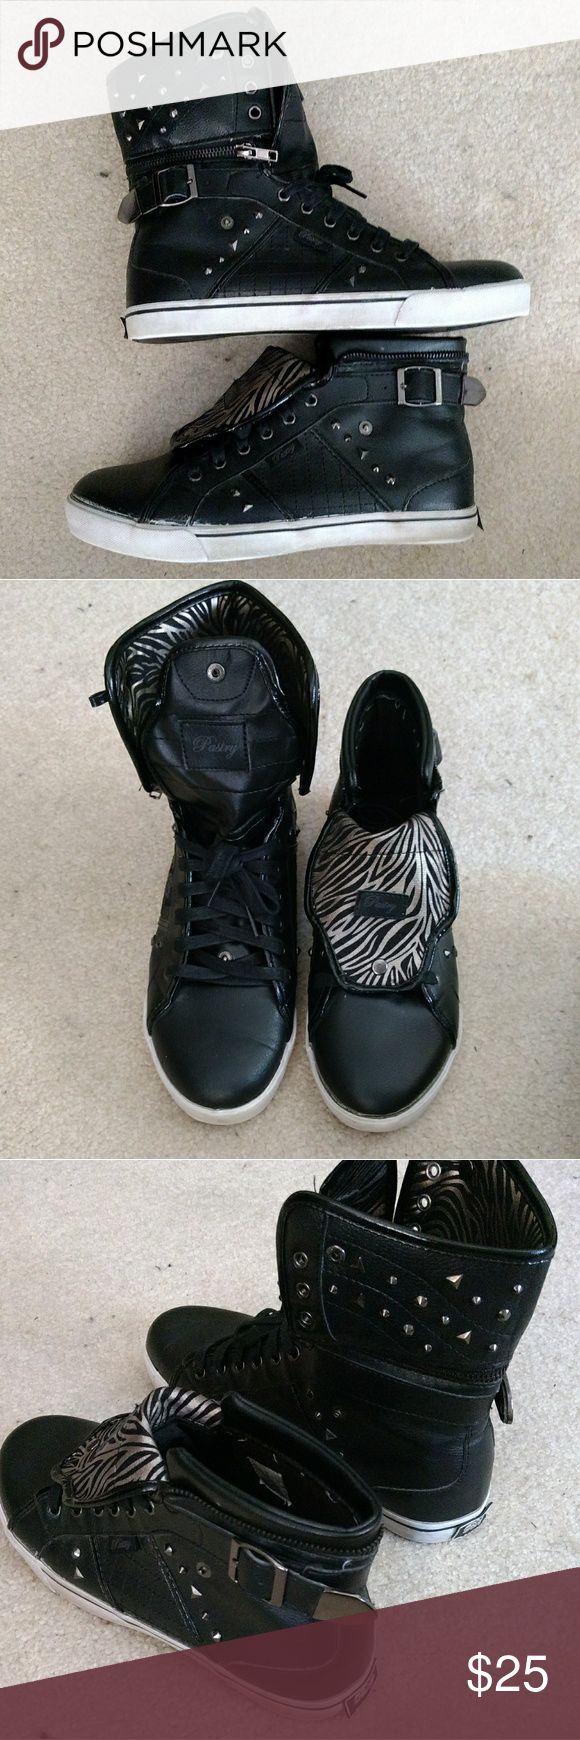 Black Convertible Pastry Hi-Top Sneakers size 9.5 Dance-inspired look. Tongue folds down and buttons, extra hi-top piece zips off or folds down. Gold and black zebra stripes on inside. Worn only a couple of times, soles are the only thing that show it, everything else is as it came. Pastry Shoes Sneakers